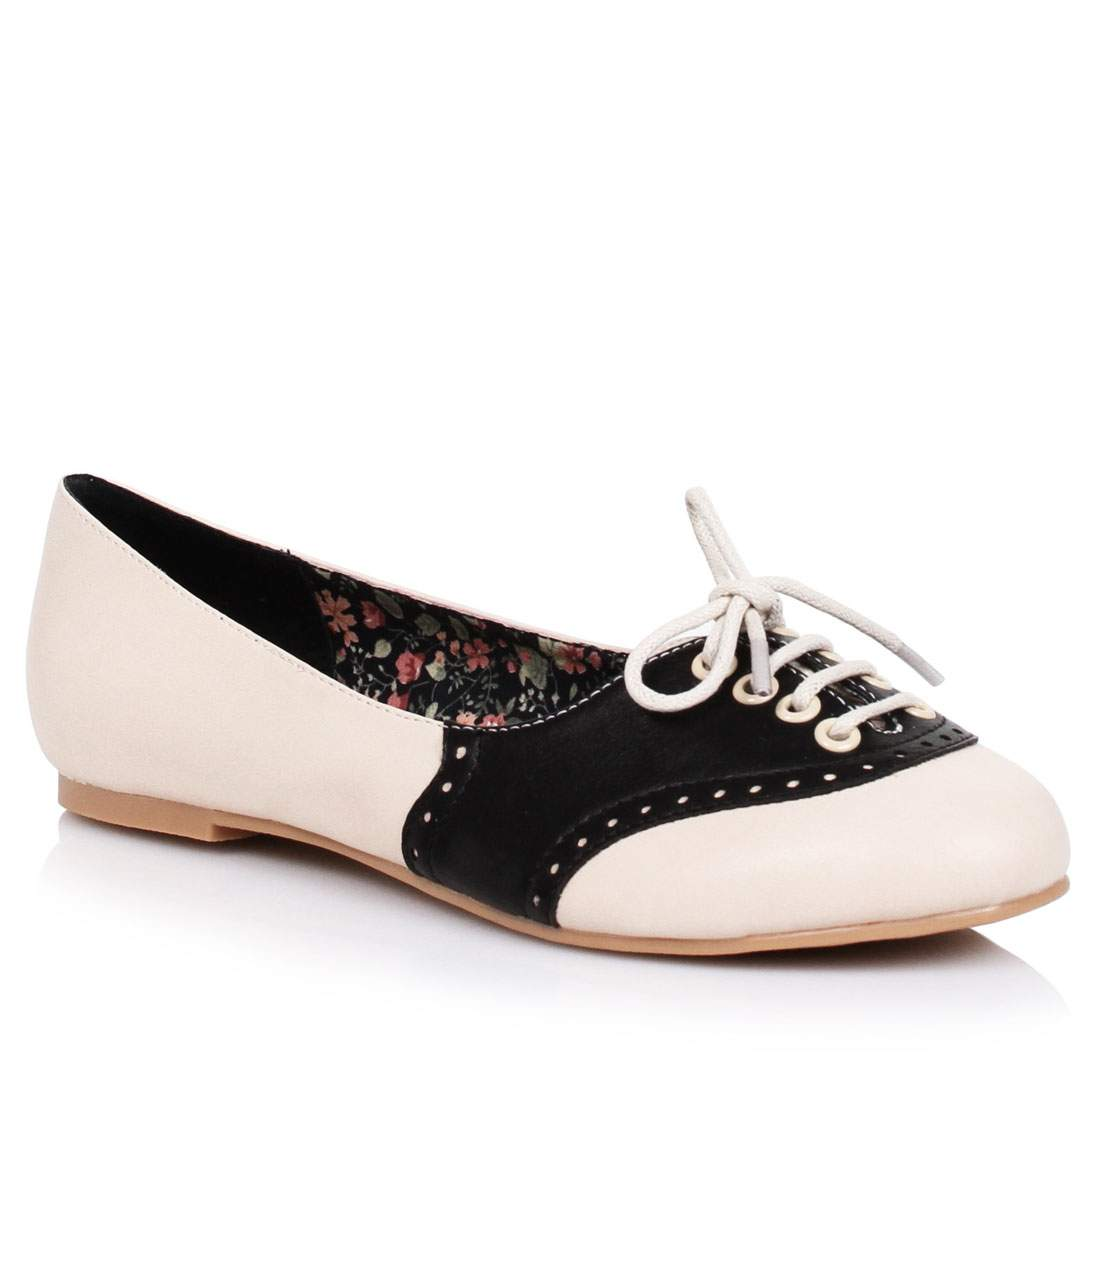 1950s Style Shoes Cream  Black Retro Halle Oxford Saddle Shoes $68.00 AT vintagedancer.com